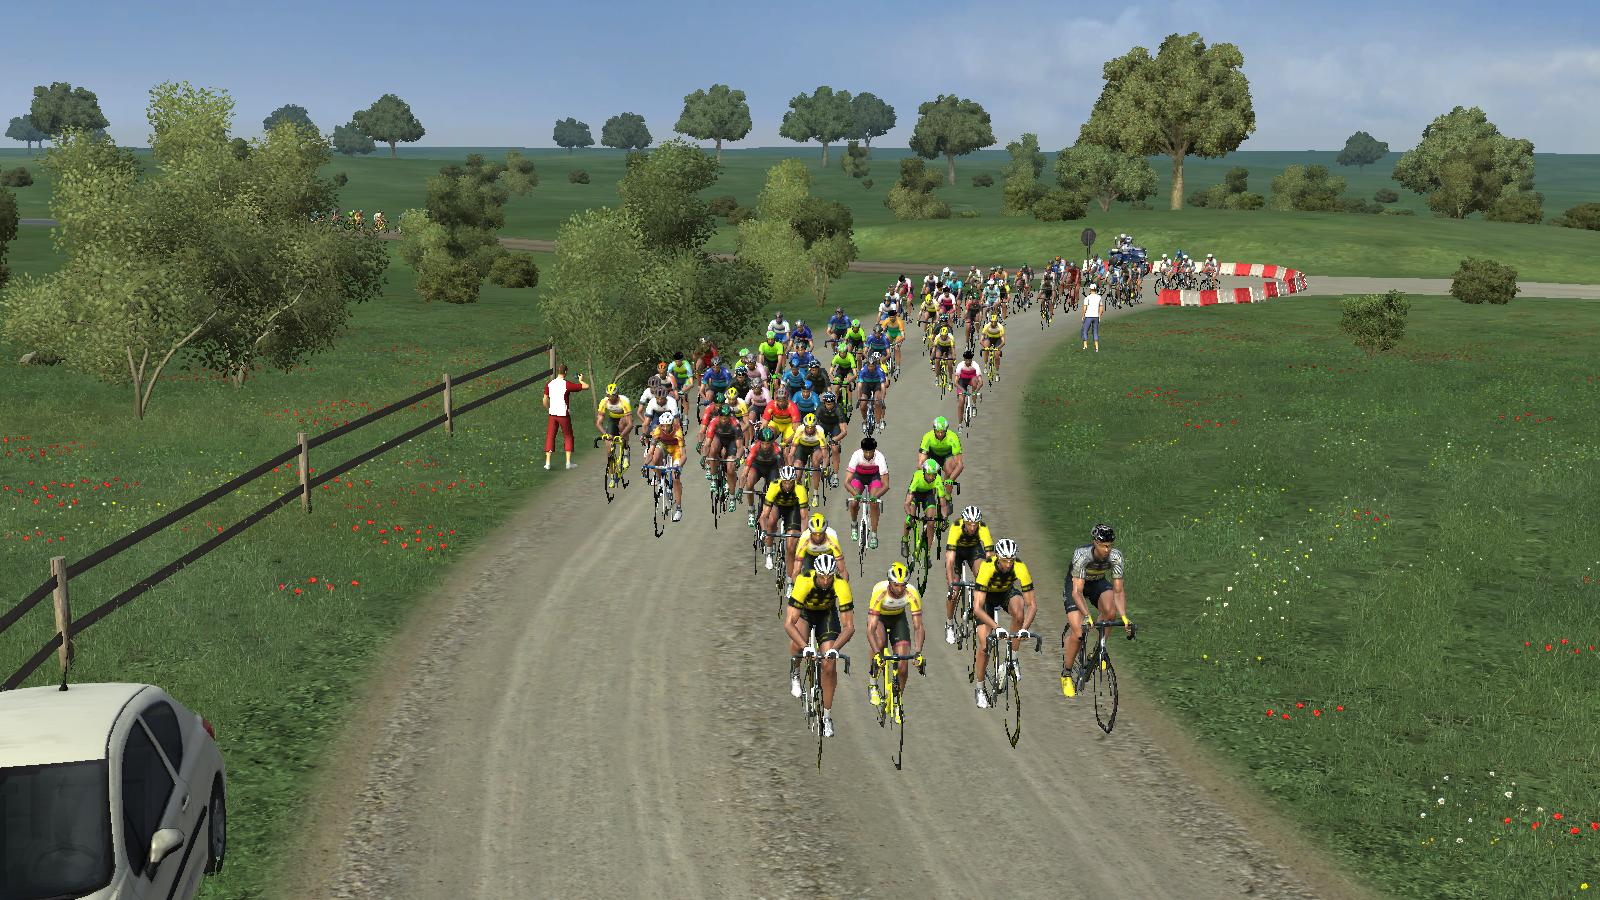 pcmdaily.com/images/mg/2019/Races/PTHC/Rheden/16.jpg